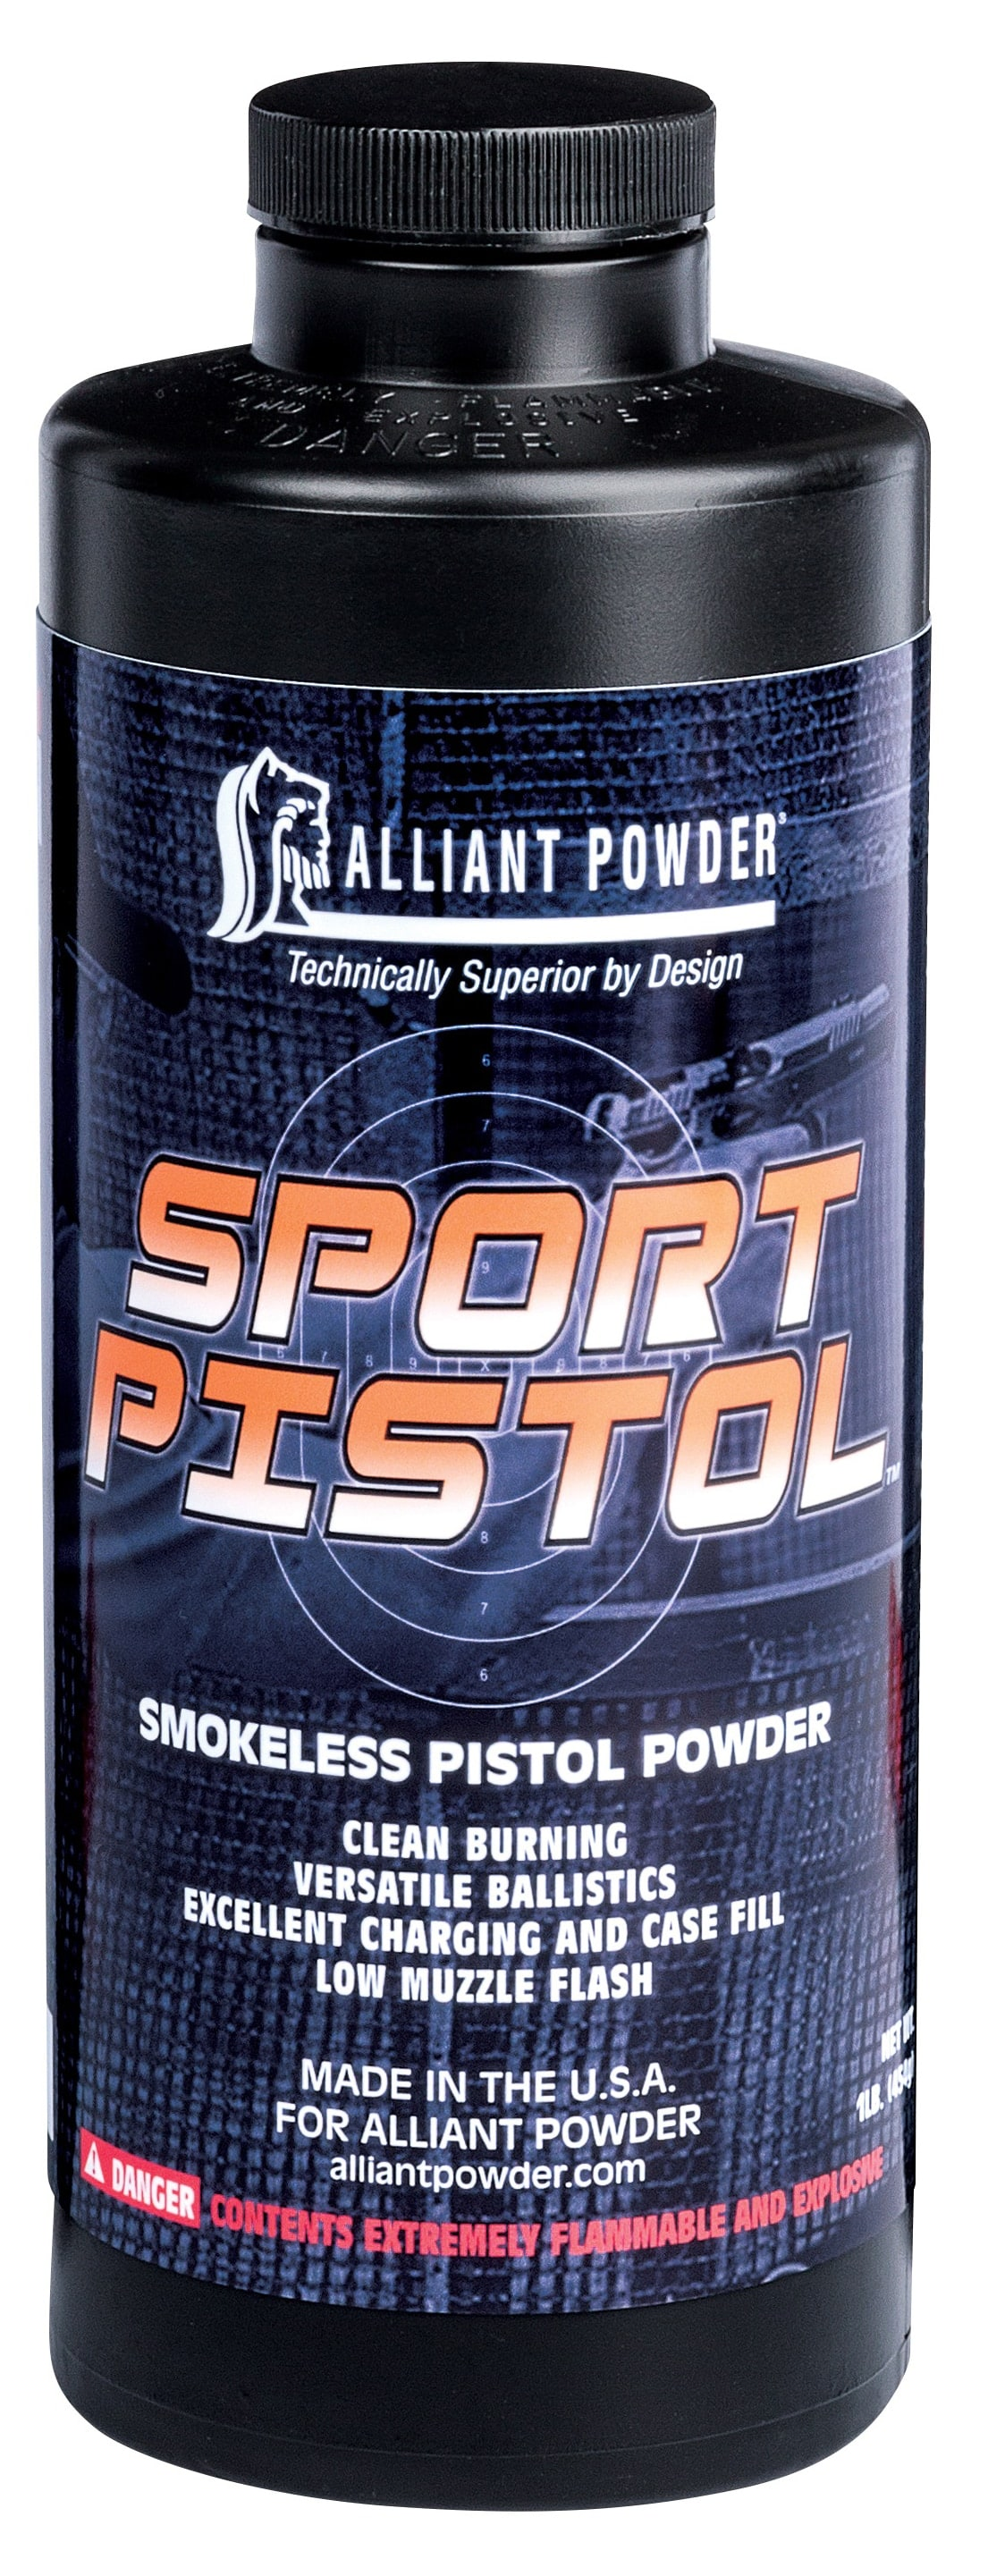 Alliant Powder offers the Sport Pistol Powder to precision handgun and action shooters. (Photo: Alliant Powder)